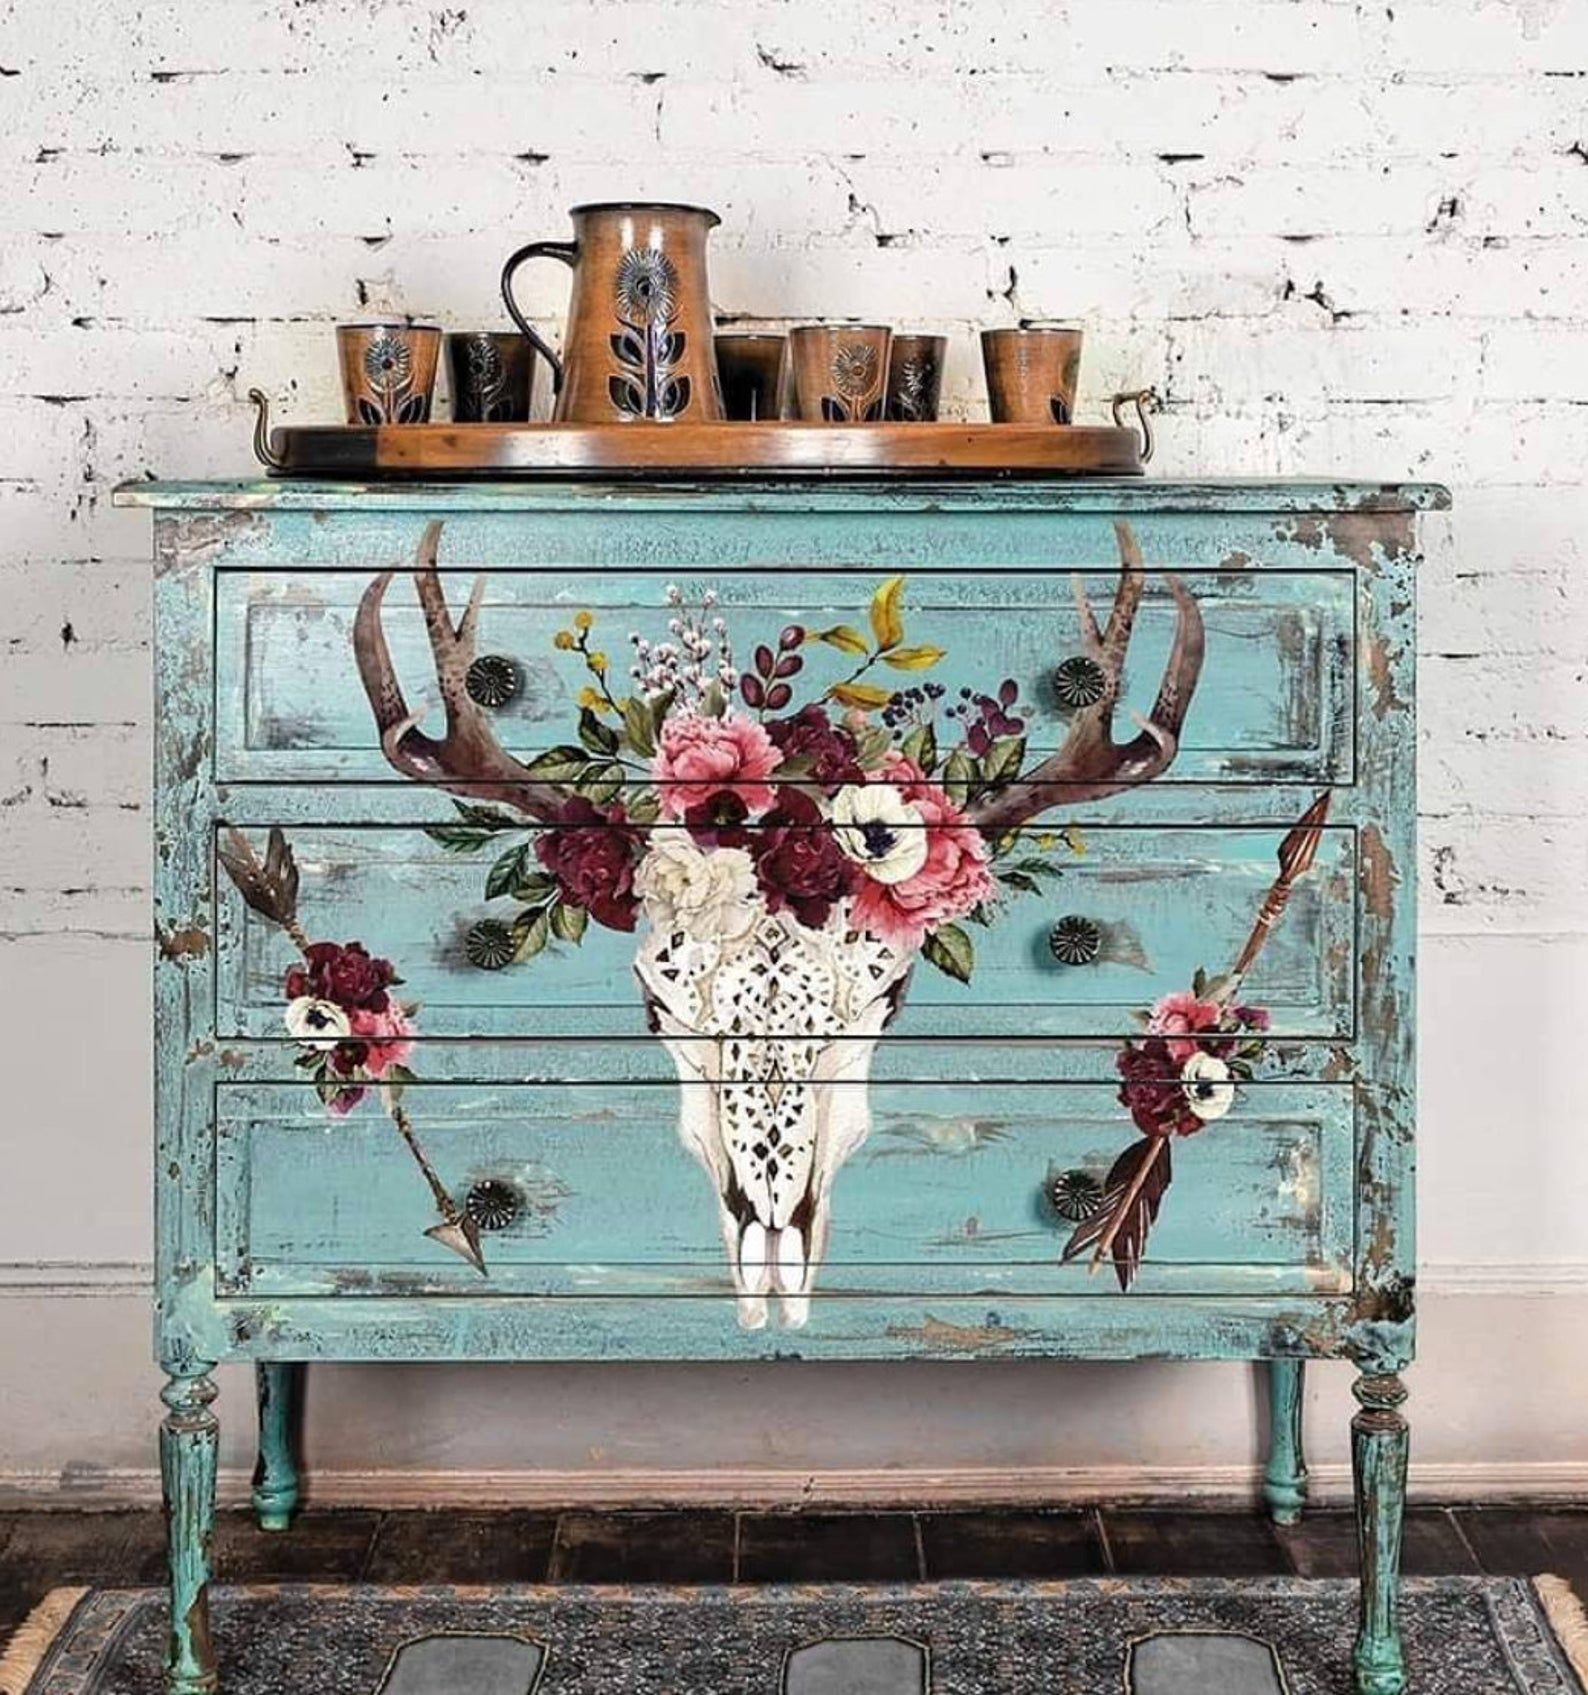 Rub On Transfers For Furniture Furniture Decals Redesign Etsy In 2020 Hand Painted Furniture Decoupage Furniture Shabby Chic Furniture